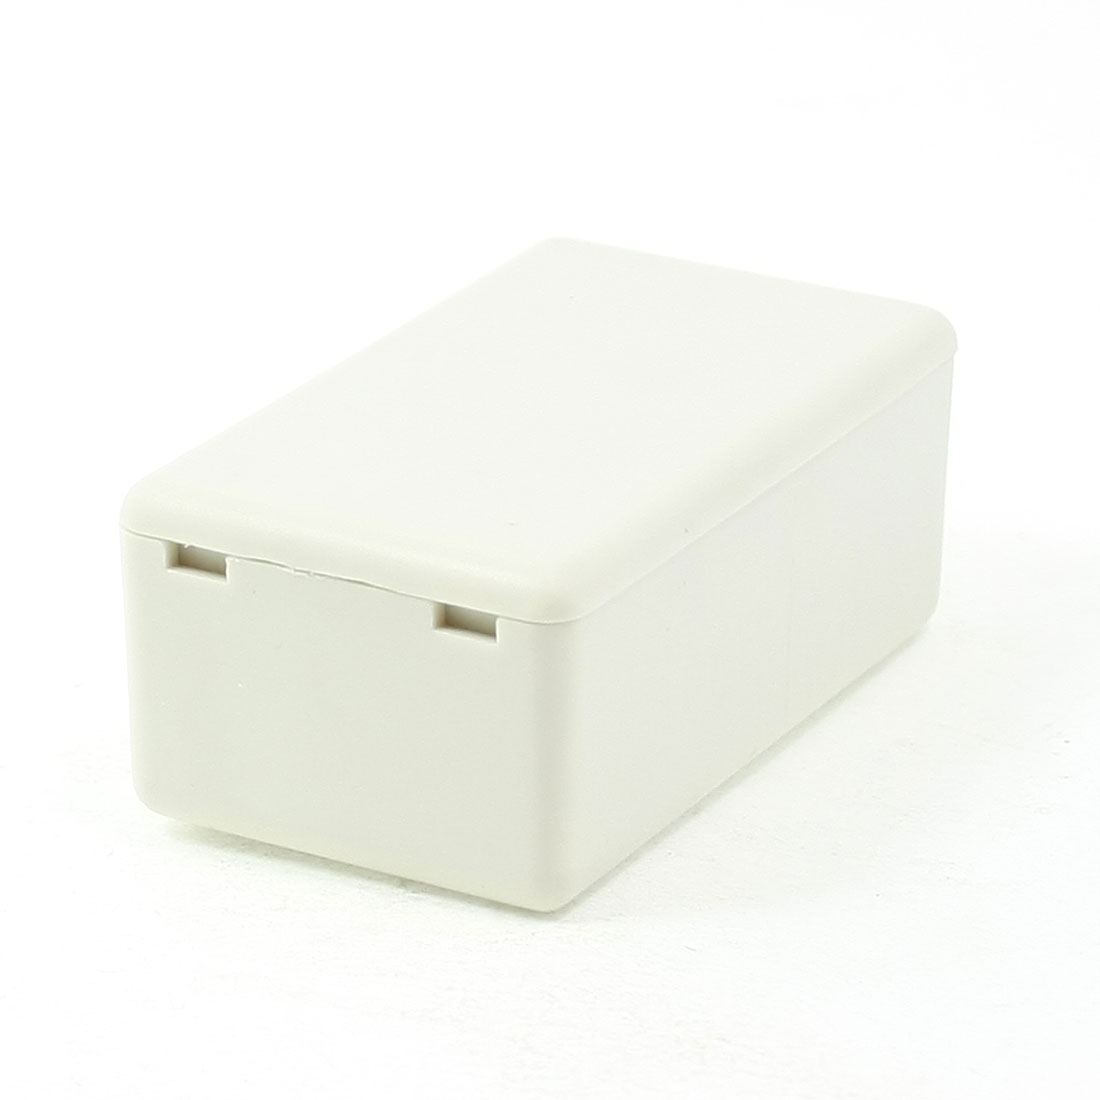 60mm x 36mm x 25mm Plastic Enclosure Case DIY Junction Box